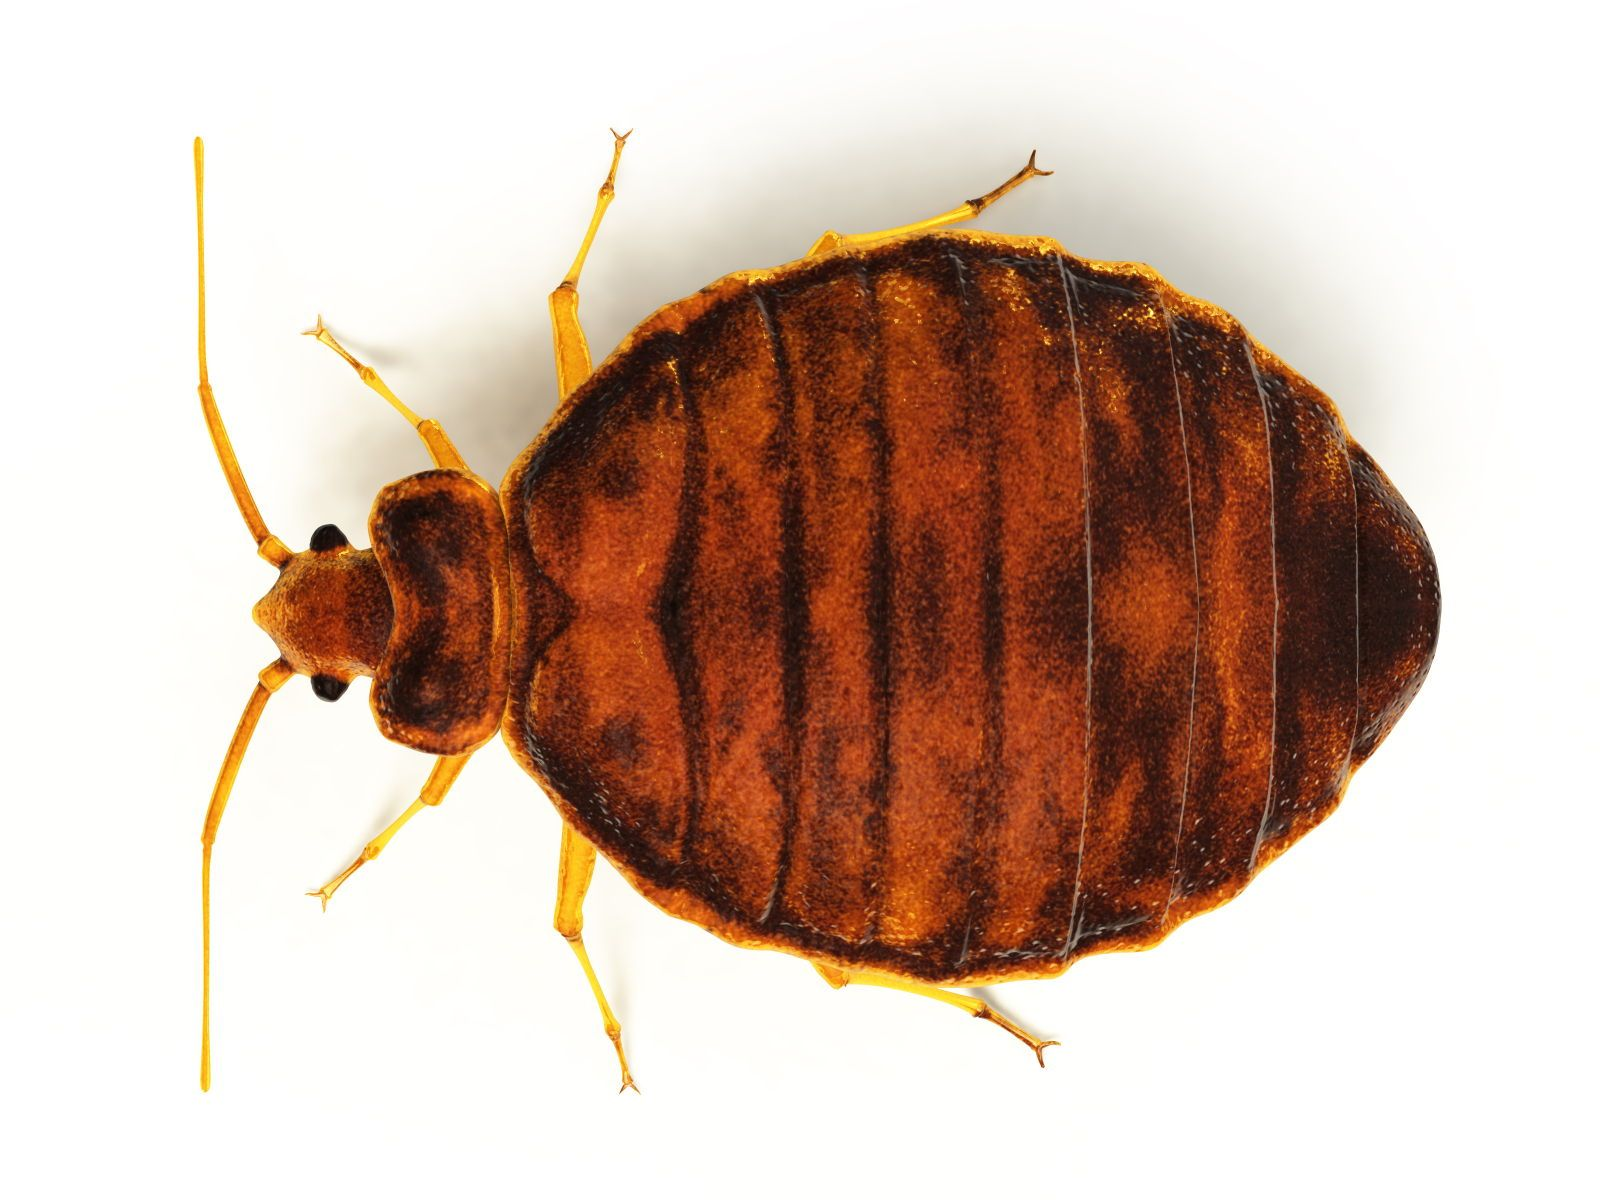 Bed bugs are tiny, wingless, reddishbrown insects